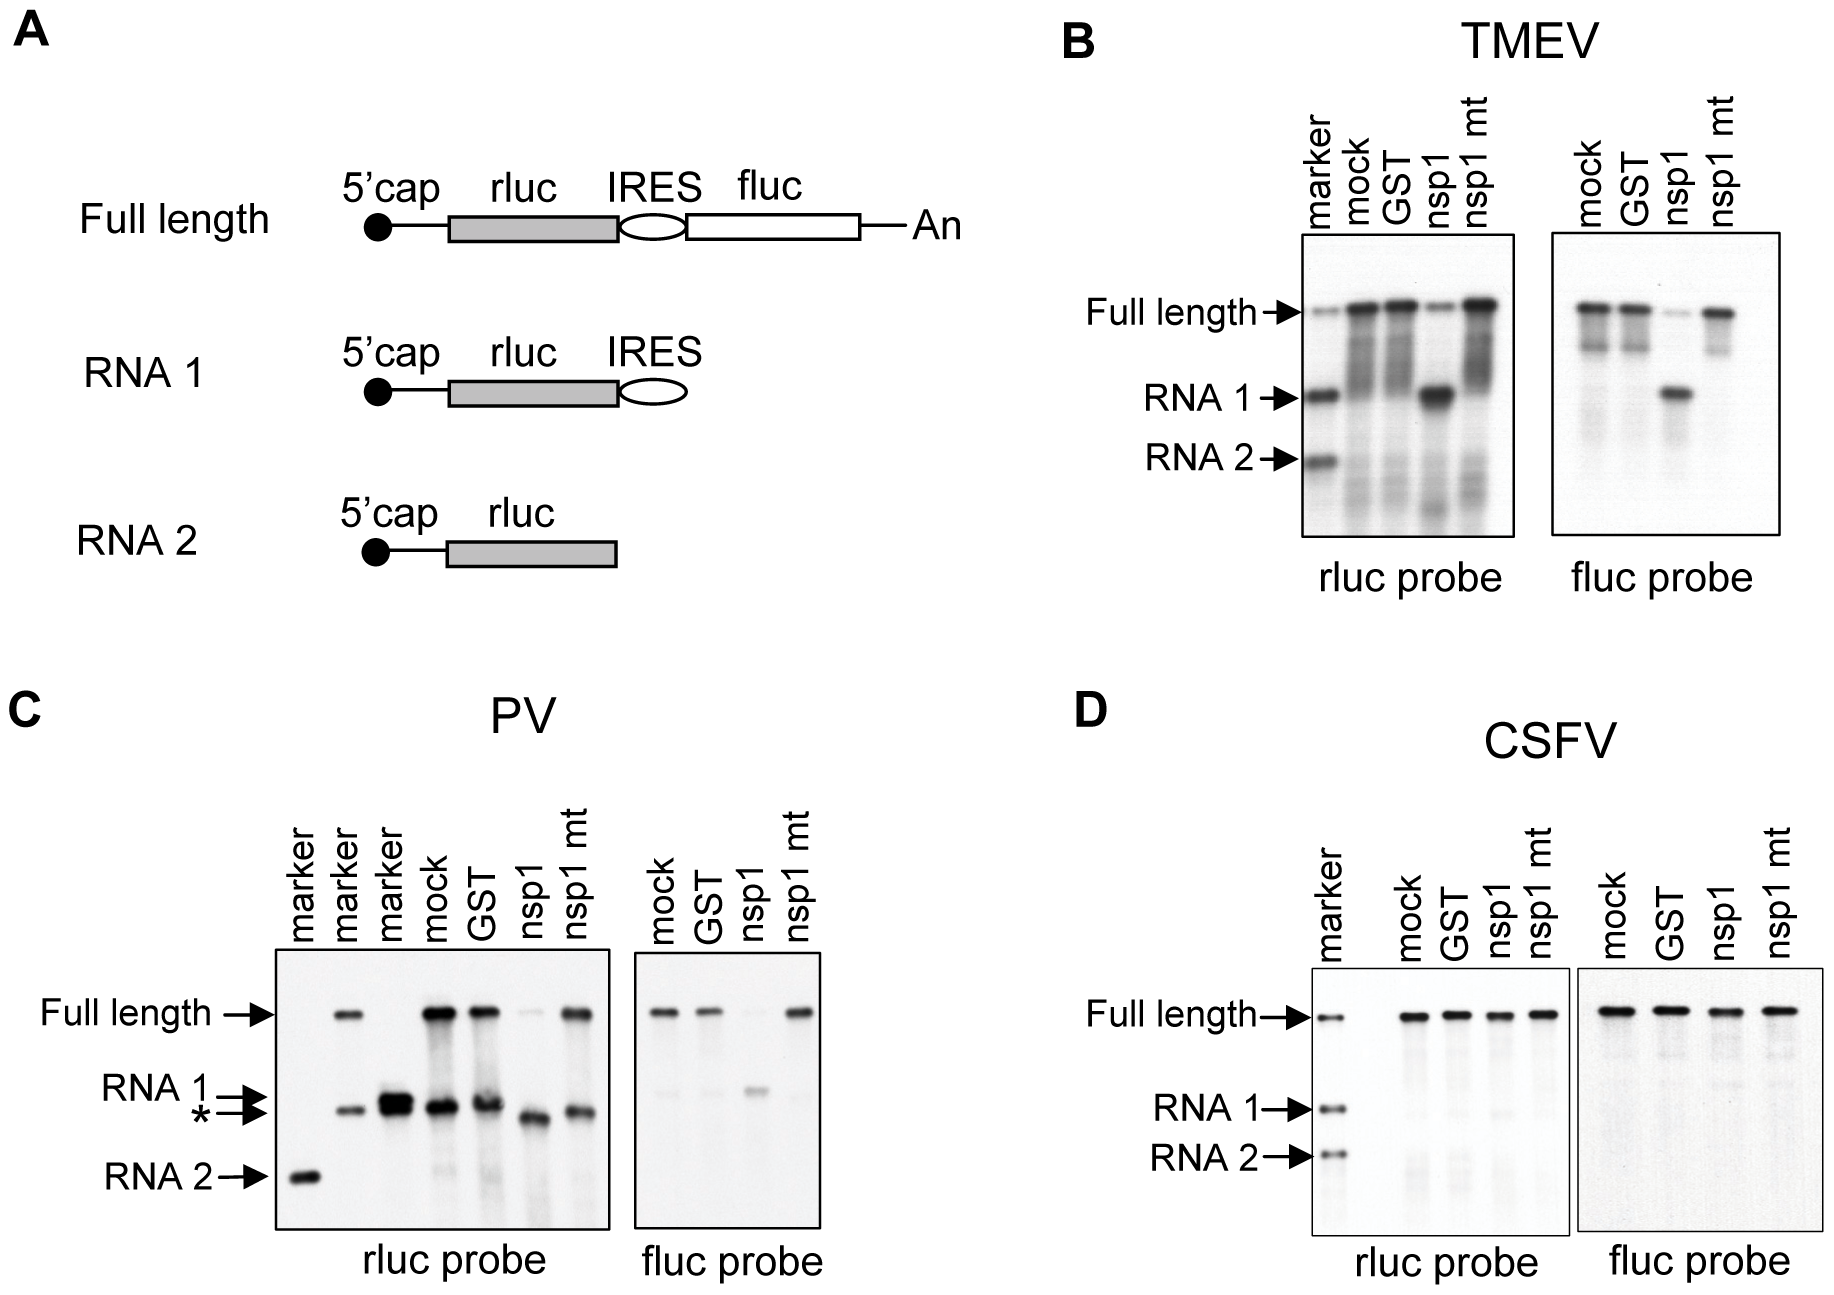 Susceptibilities of IRES-containing dicistronic RNAs to nsp1-mediated RNA cleavage.